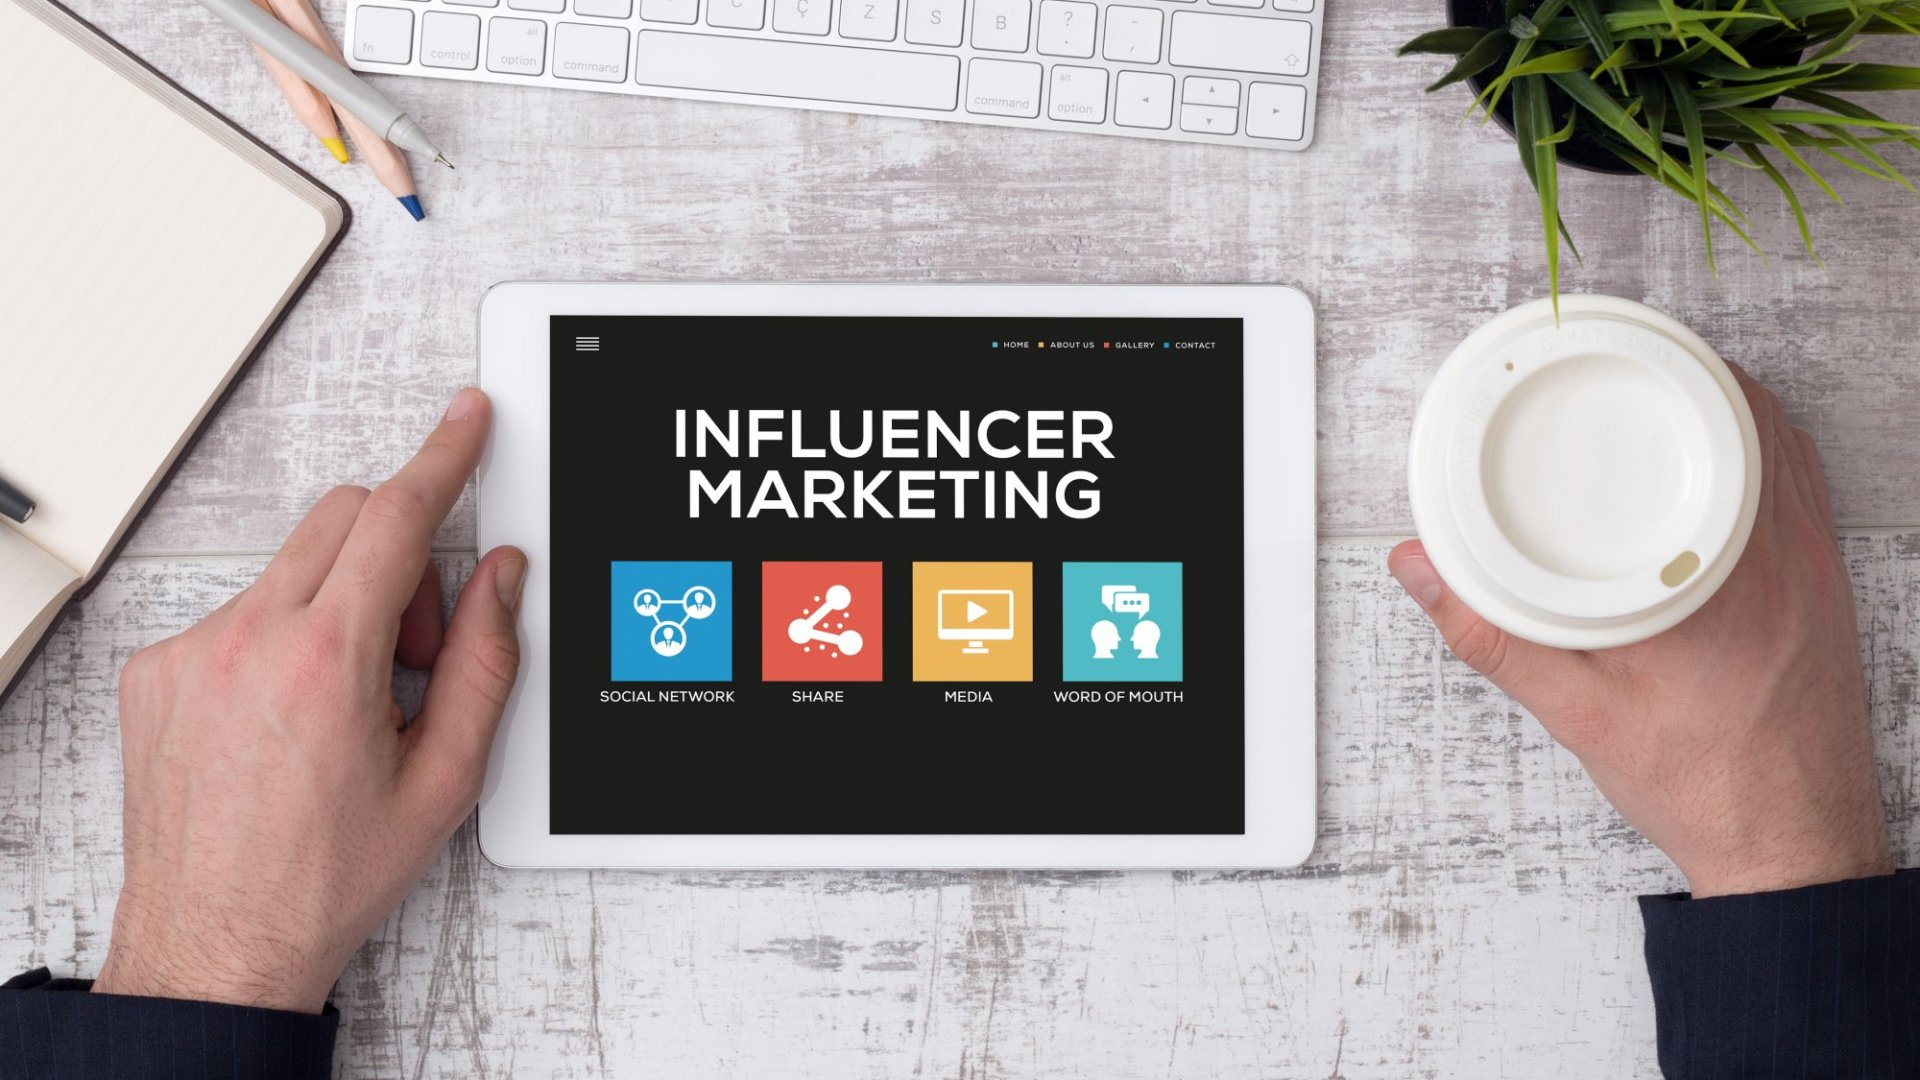 <b>For B2B brands to effectively position their product and engage their target audience through influencer marketing, it's essential to work with brand partners who hit high marks in the areas of authority, alignment, authenticity, and relevance. </b>